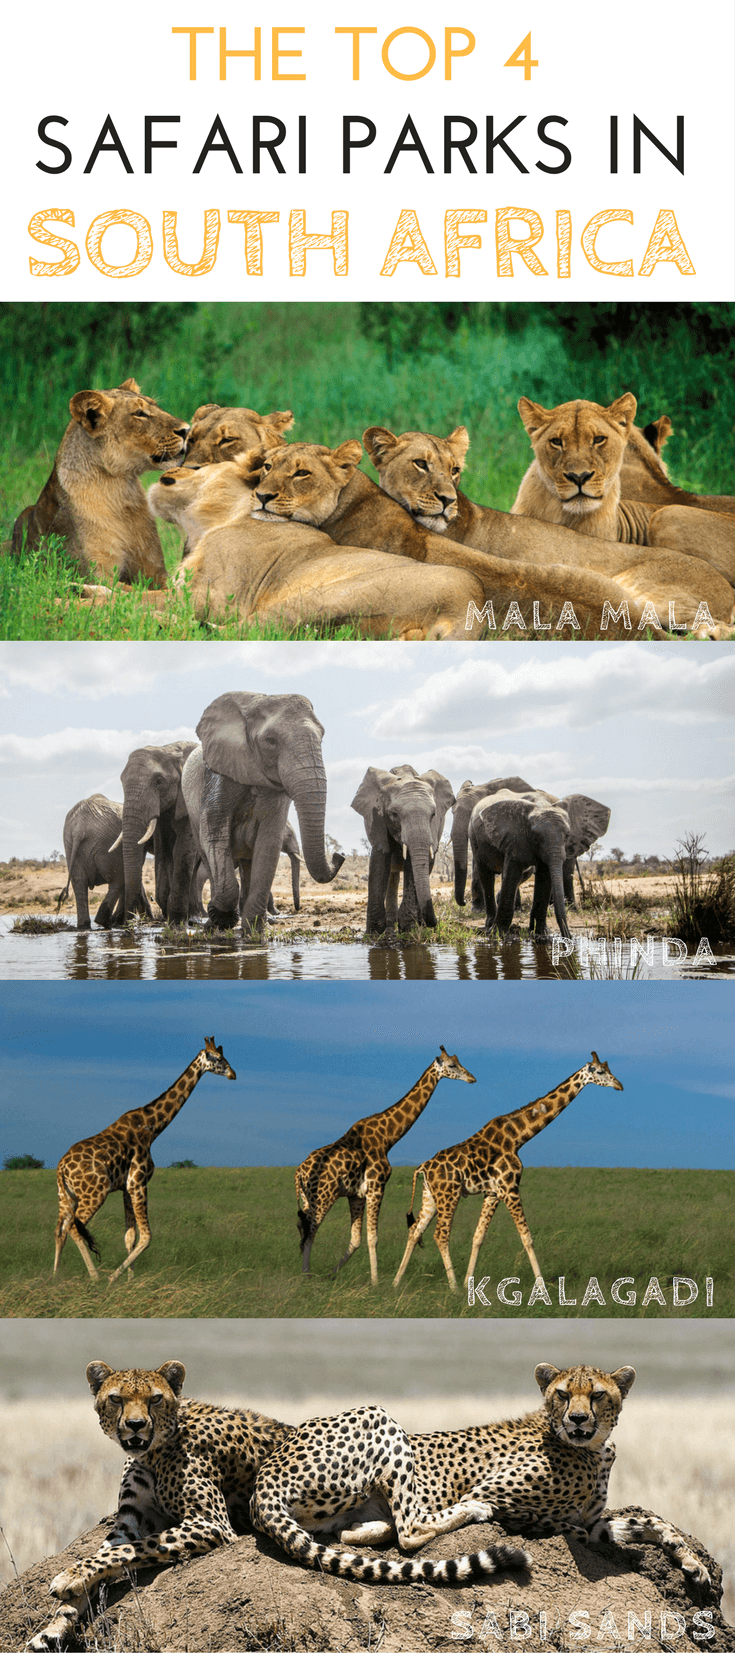 Four South African Parks In The Top Best Safari Parks Of Africa - 10 best safaris in africa